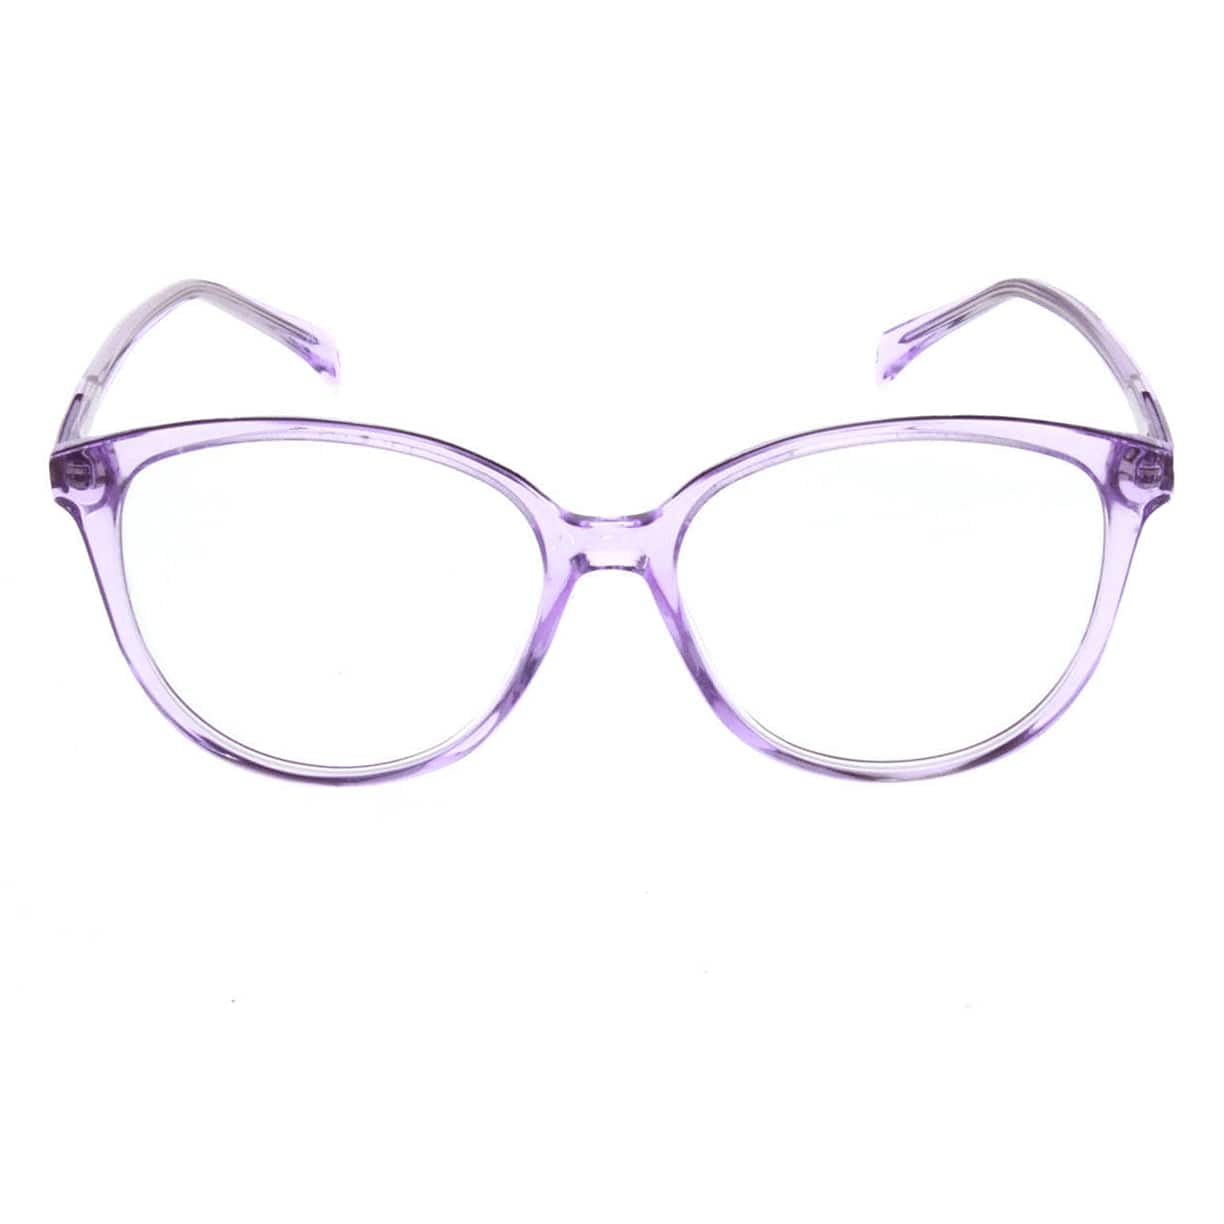 saint laurent women s round acetate optical frames new coming women glasses clear